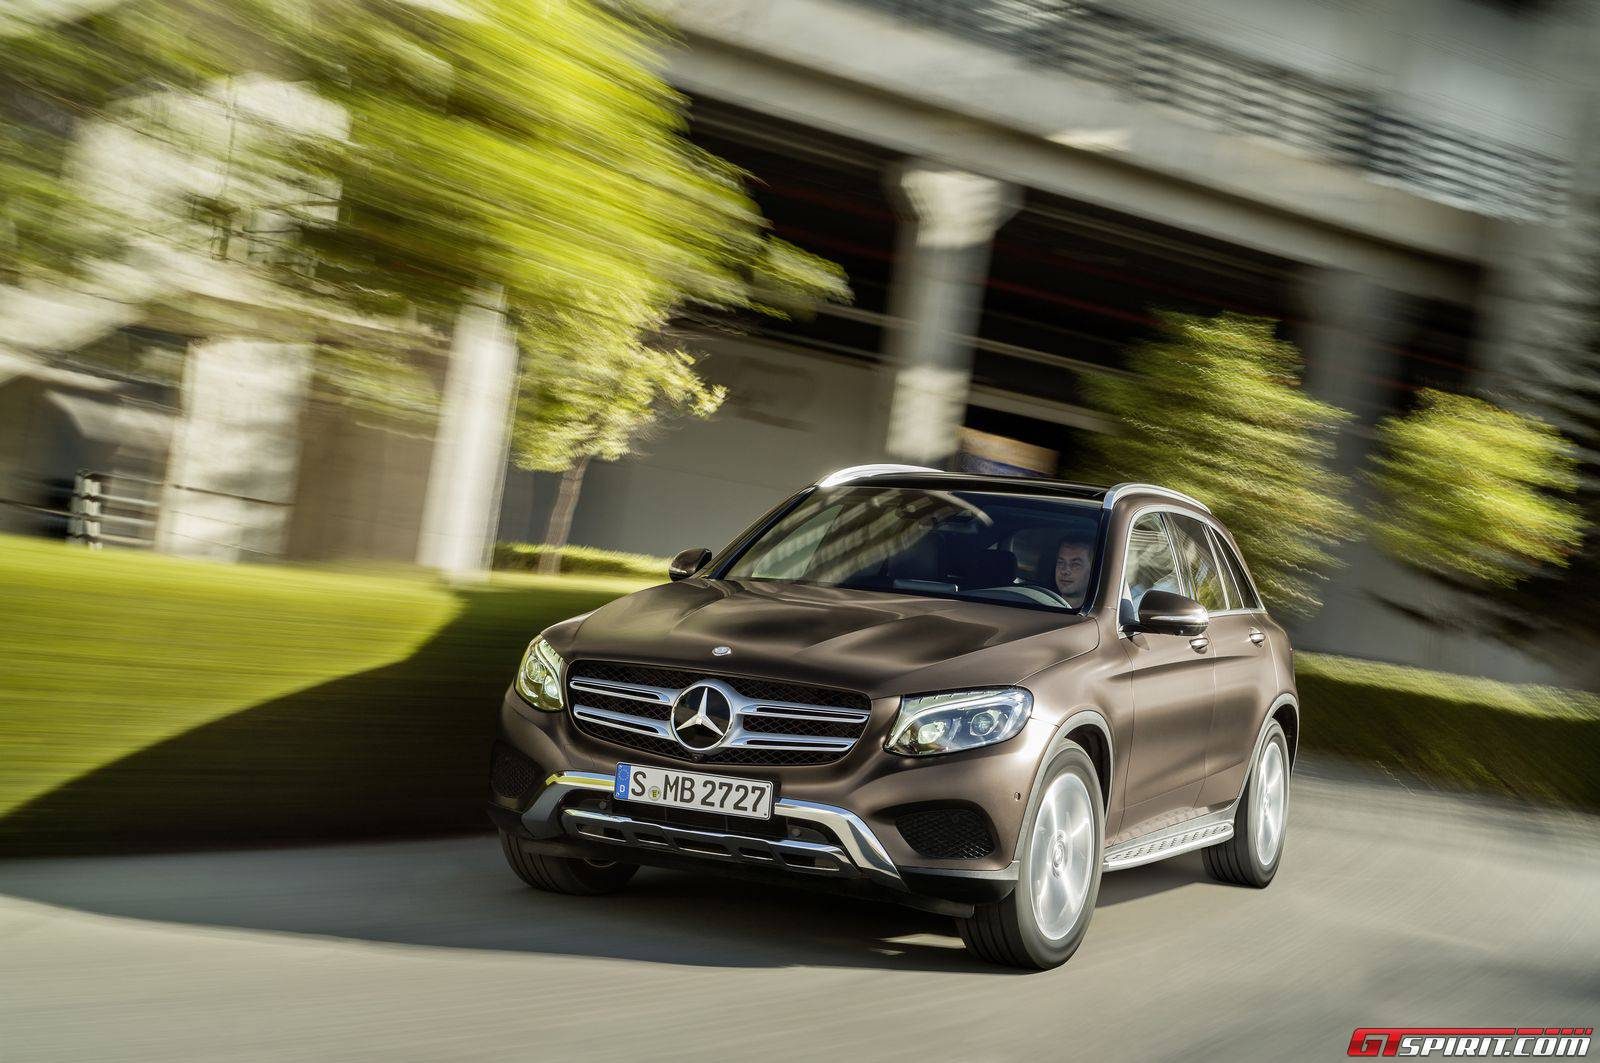 Mercedes benz glc450 amg and glc63 amg on the cards gtspirit for Mercedes benz card